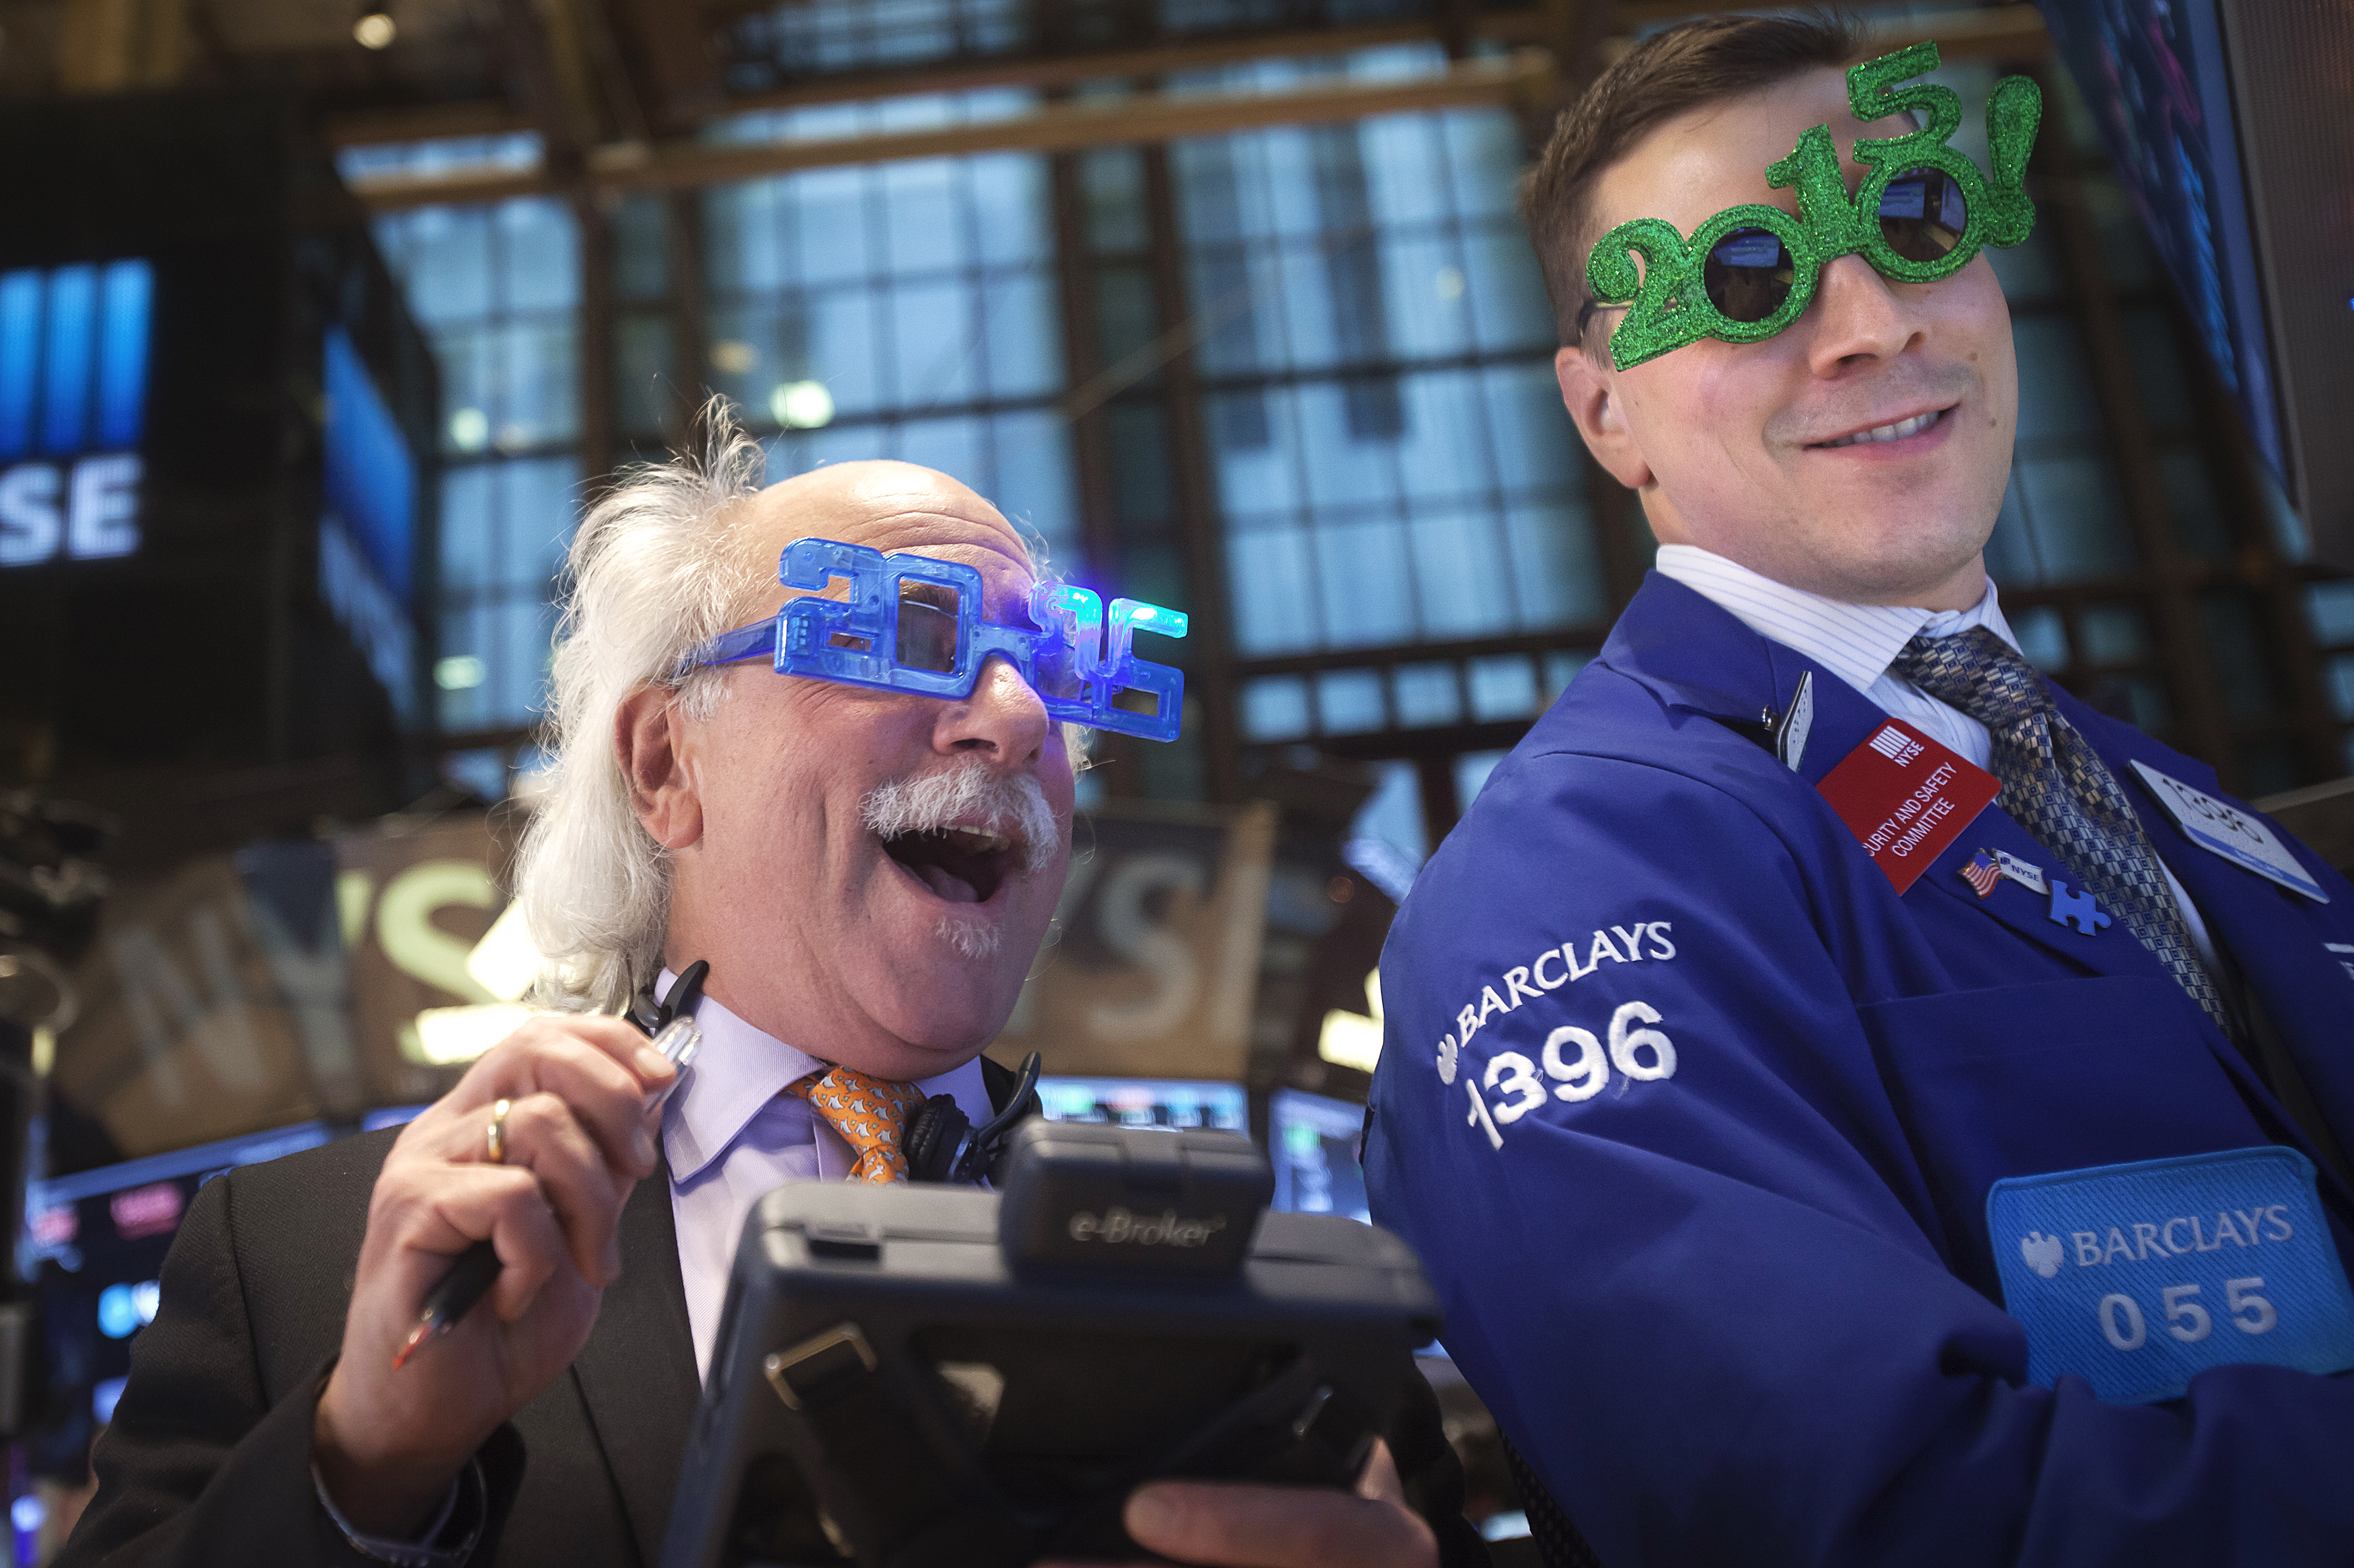 Traders Tuchman and Mastrolia work on the floor of the New York Stock Exchange while wearing 2015 novelty glasses on New Year's Eve, the last trading day of the year, in New York